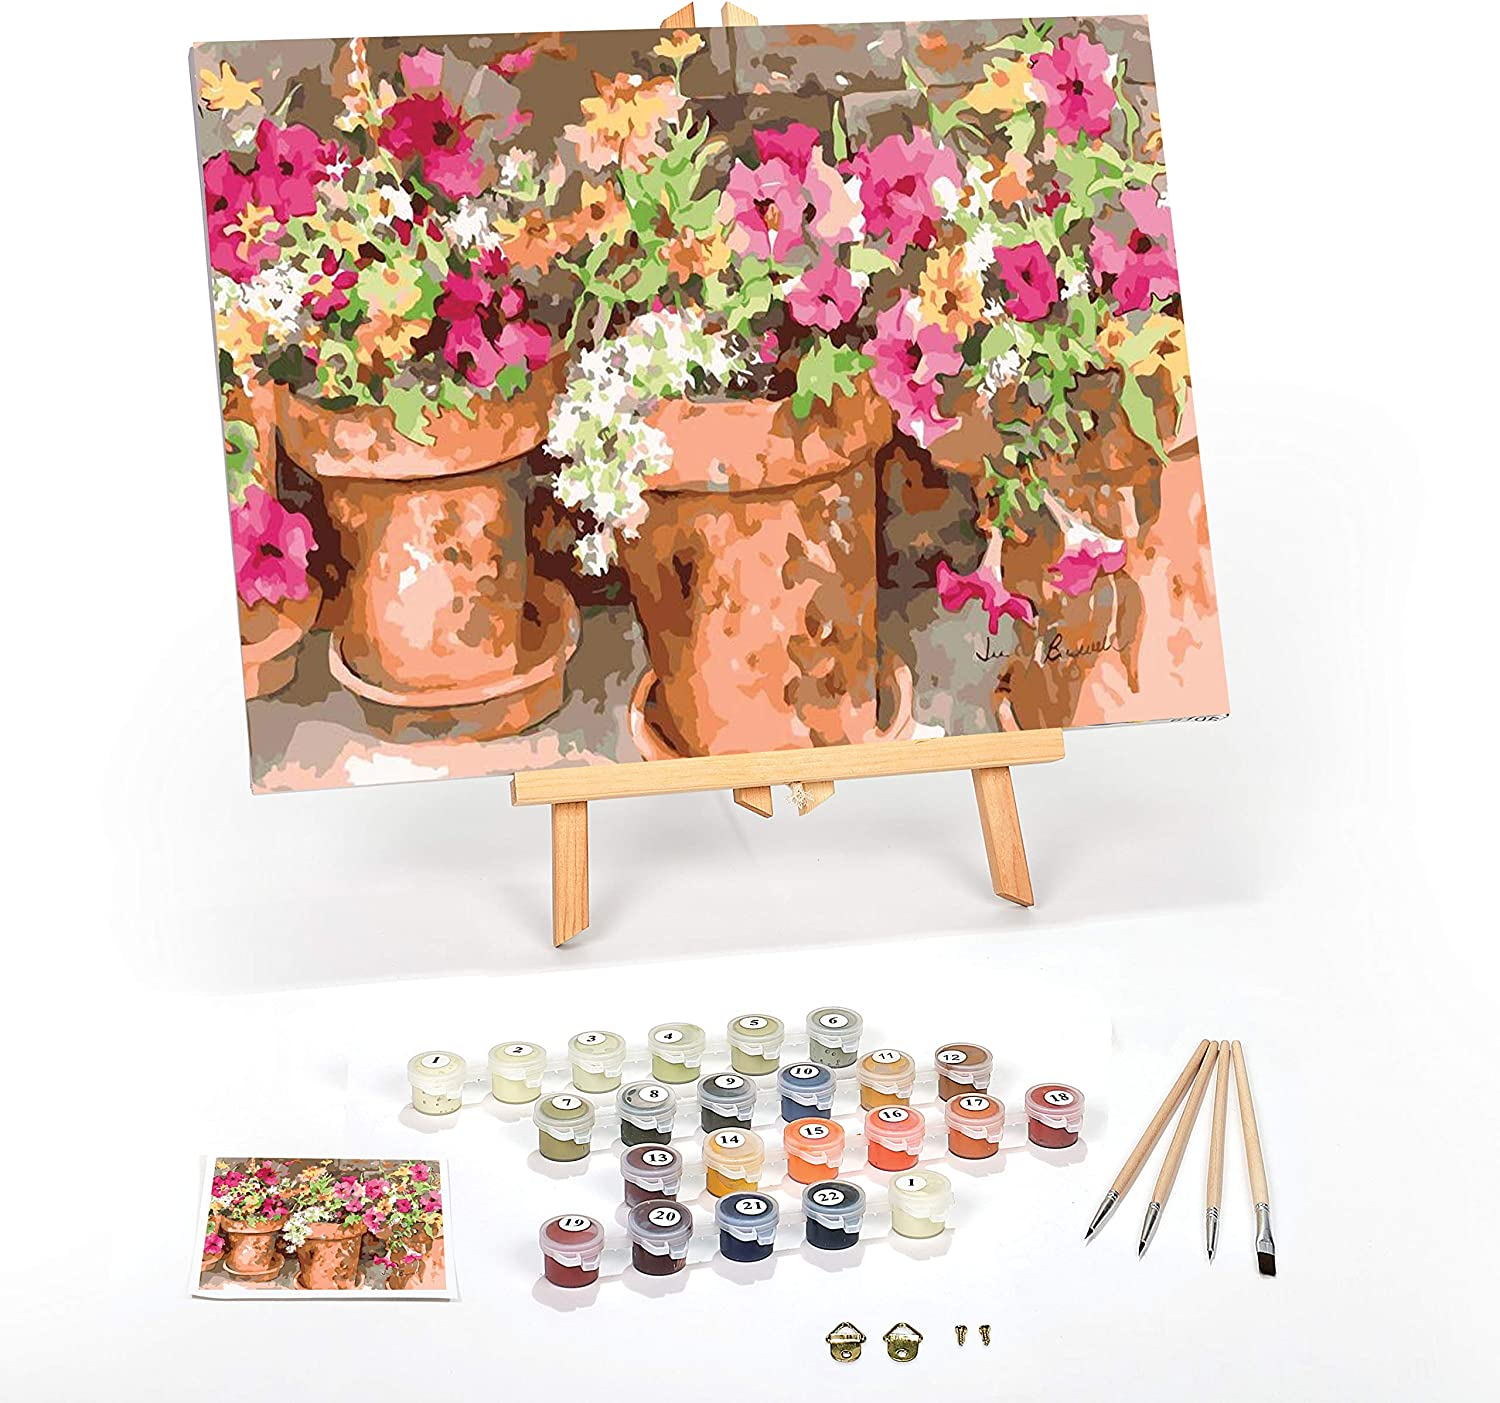 1X Paint By Numbers Kits for Adult,DIY Canvas Painting for Adults Beginner F8Y0